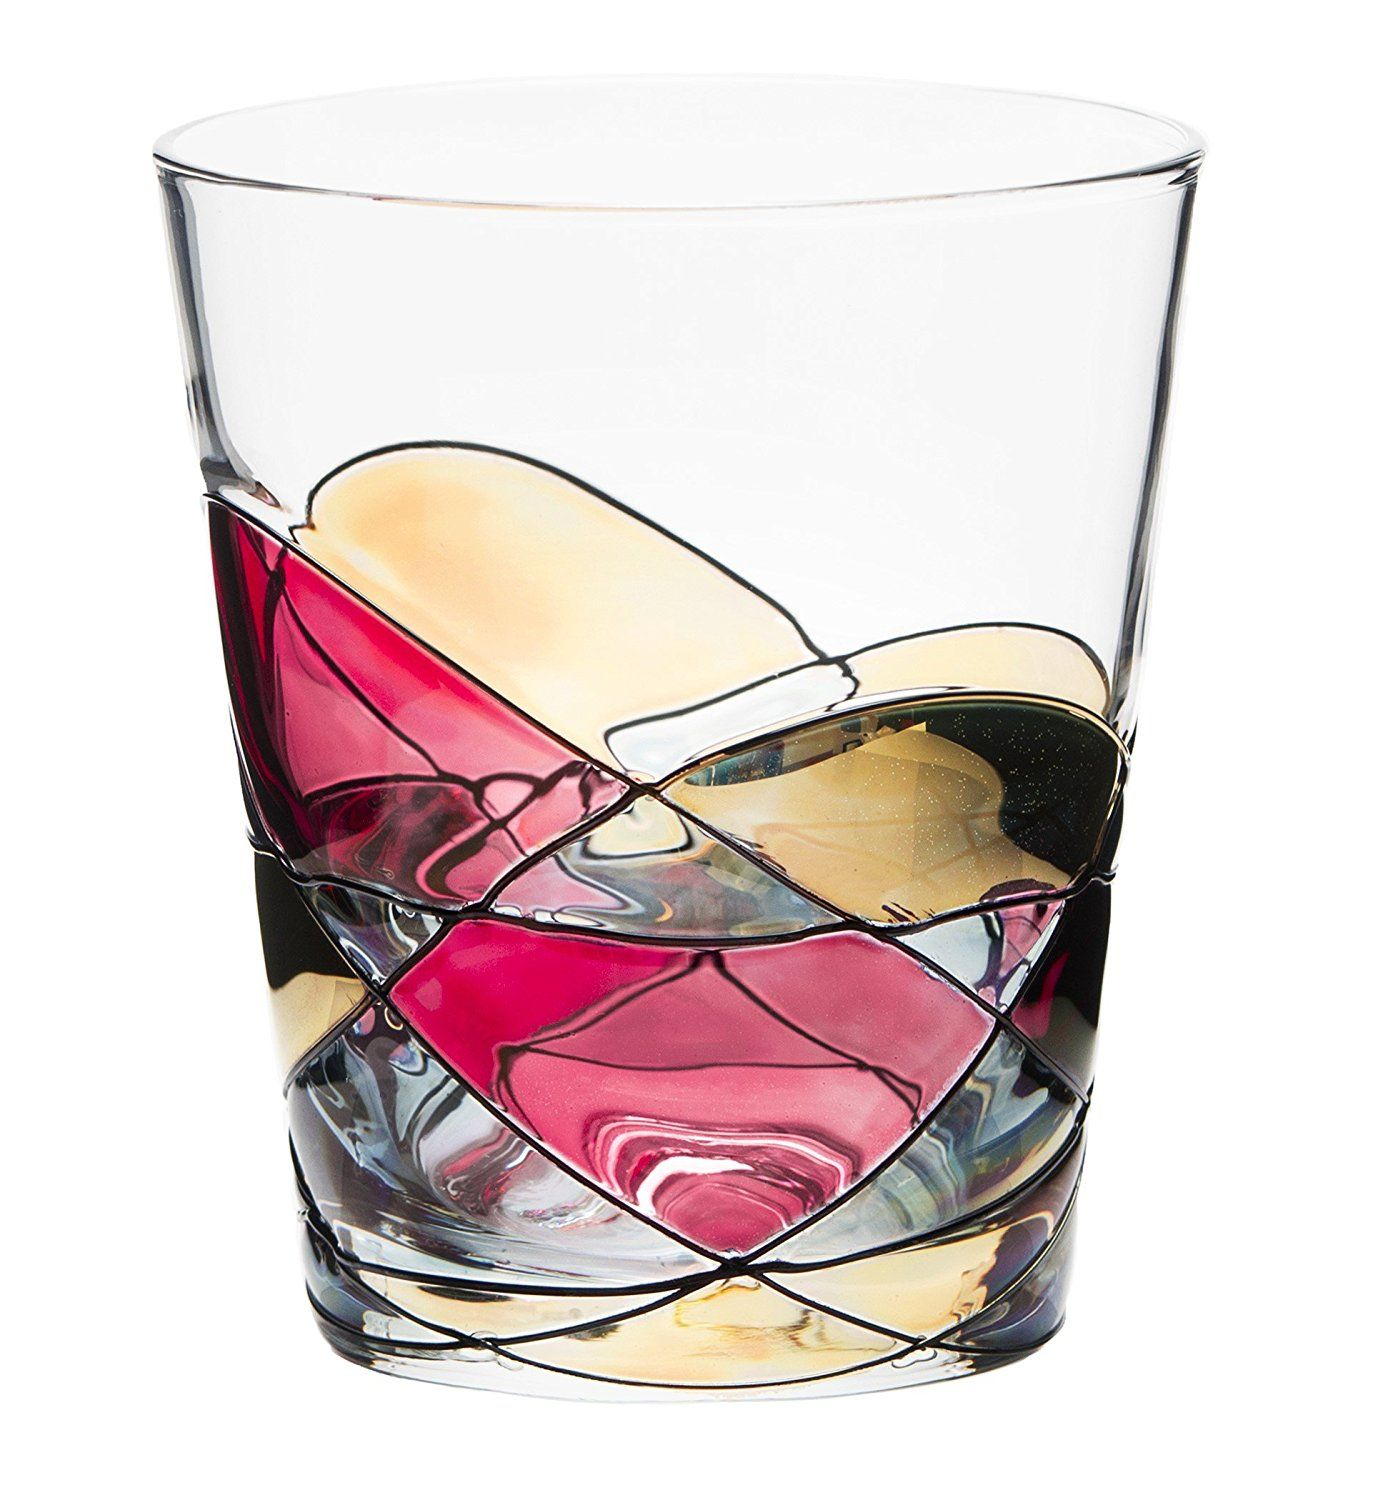 Drinking Glasses Designs Amazon Antoni Barcelona Drinking Glass 12oz Unique